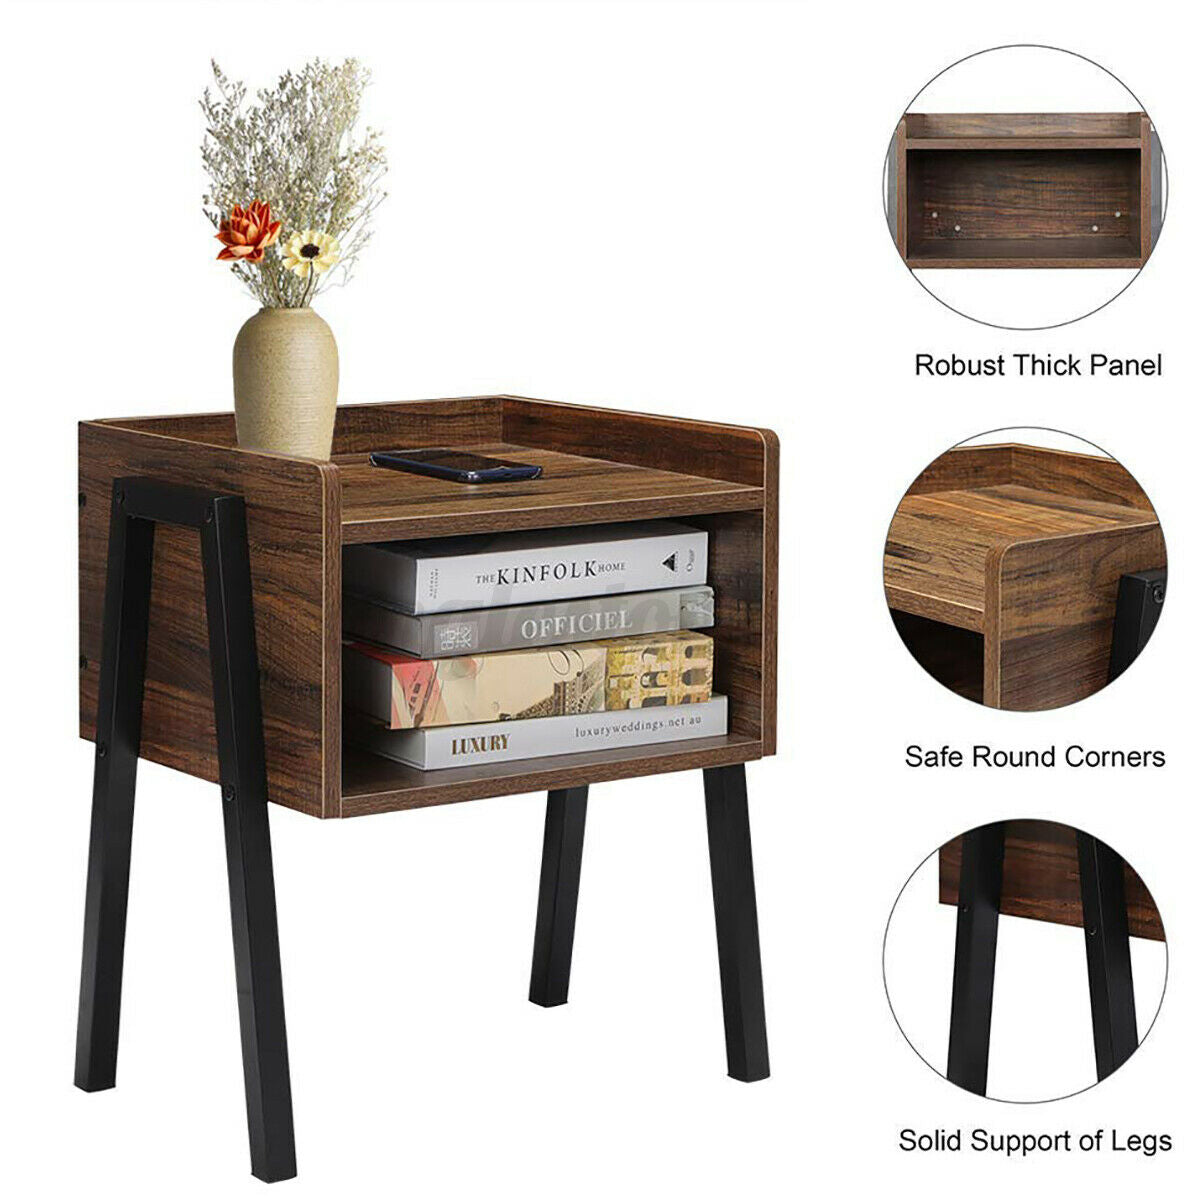 Beautiful-end-table-wooden-table-side-table-coffee-table-table-sofa-table